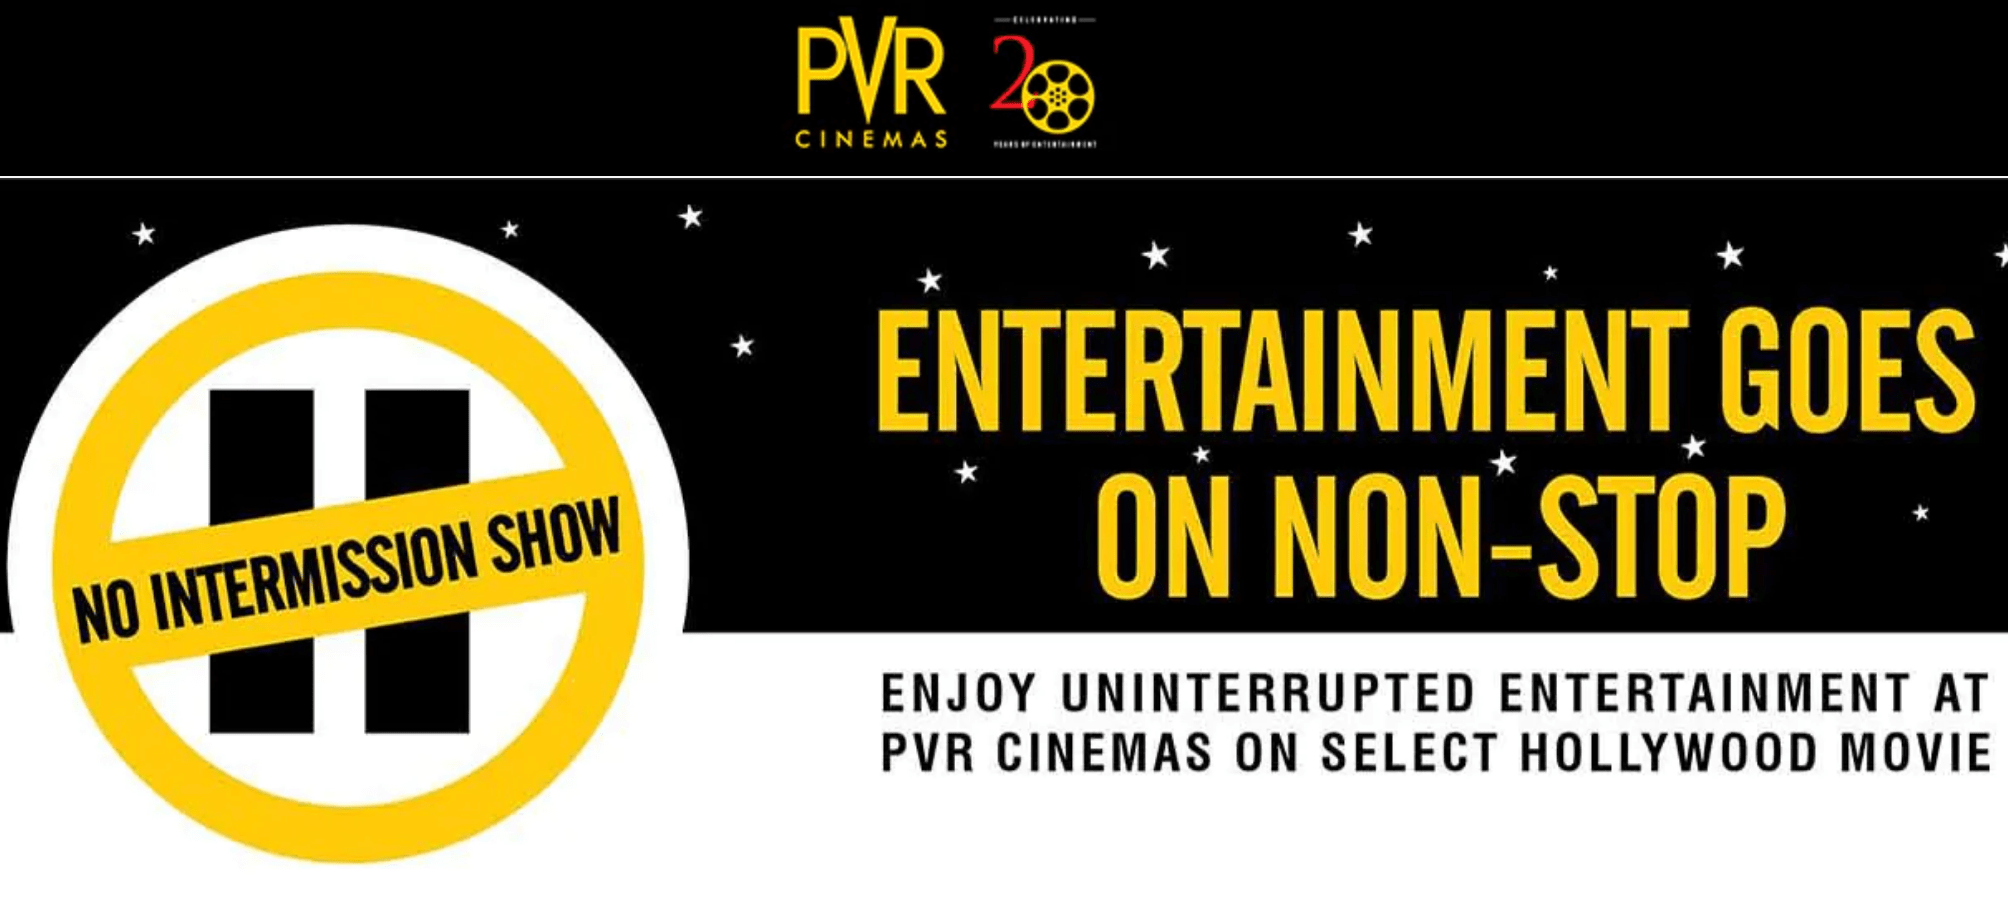 There Are Secret PVR Movie Shows Around India That Have NO Intervals.